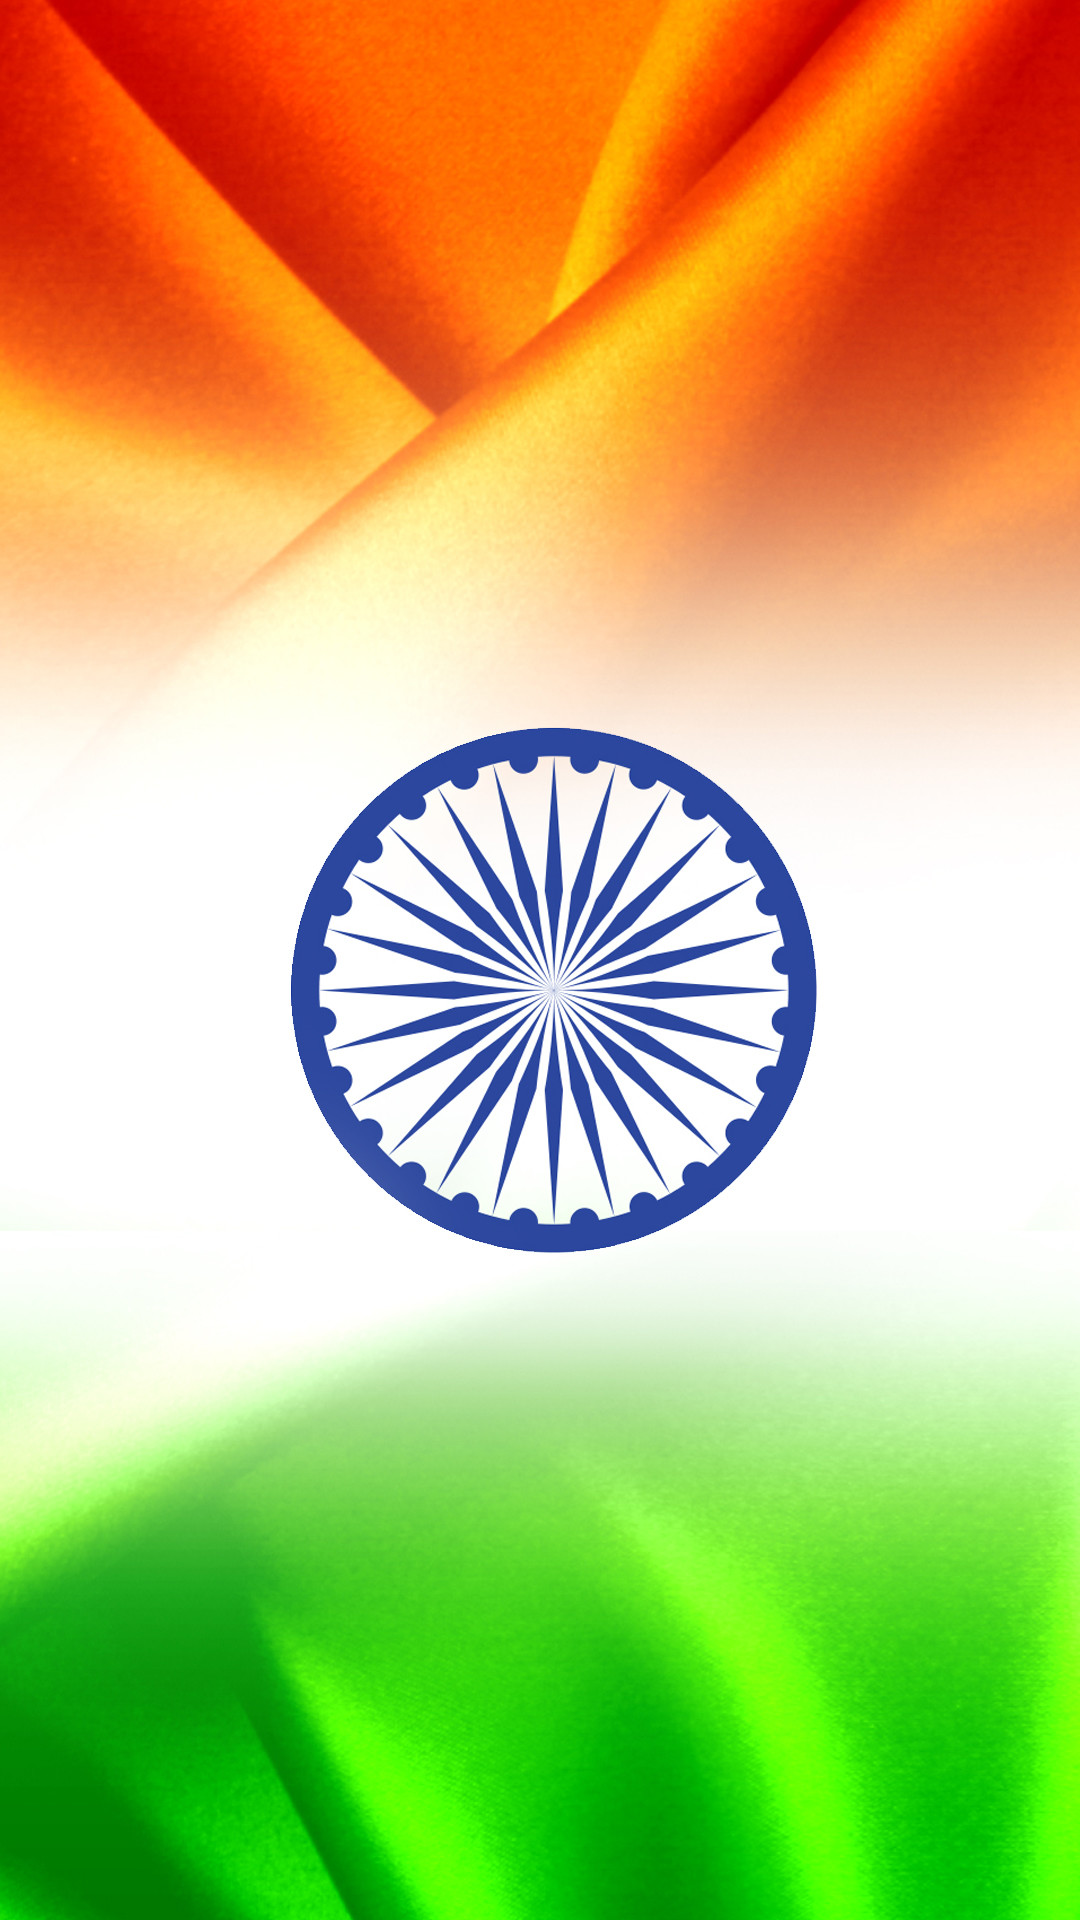 India Flag for Mobile Phone Wallpaper 11 of 17 – Tricolour India Flag – HD  Wallpapers for Free